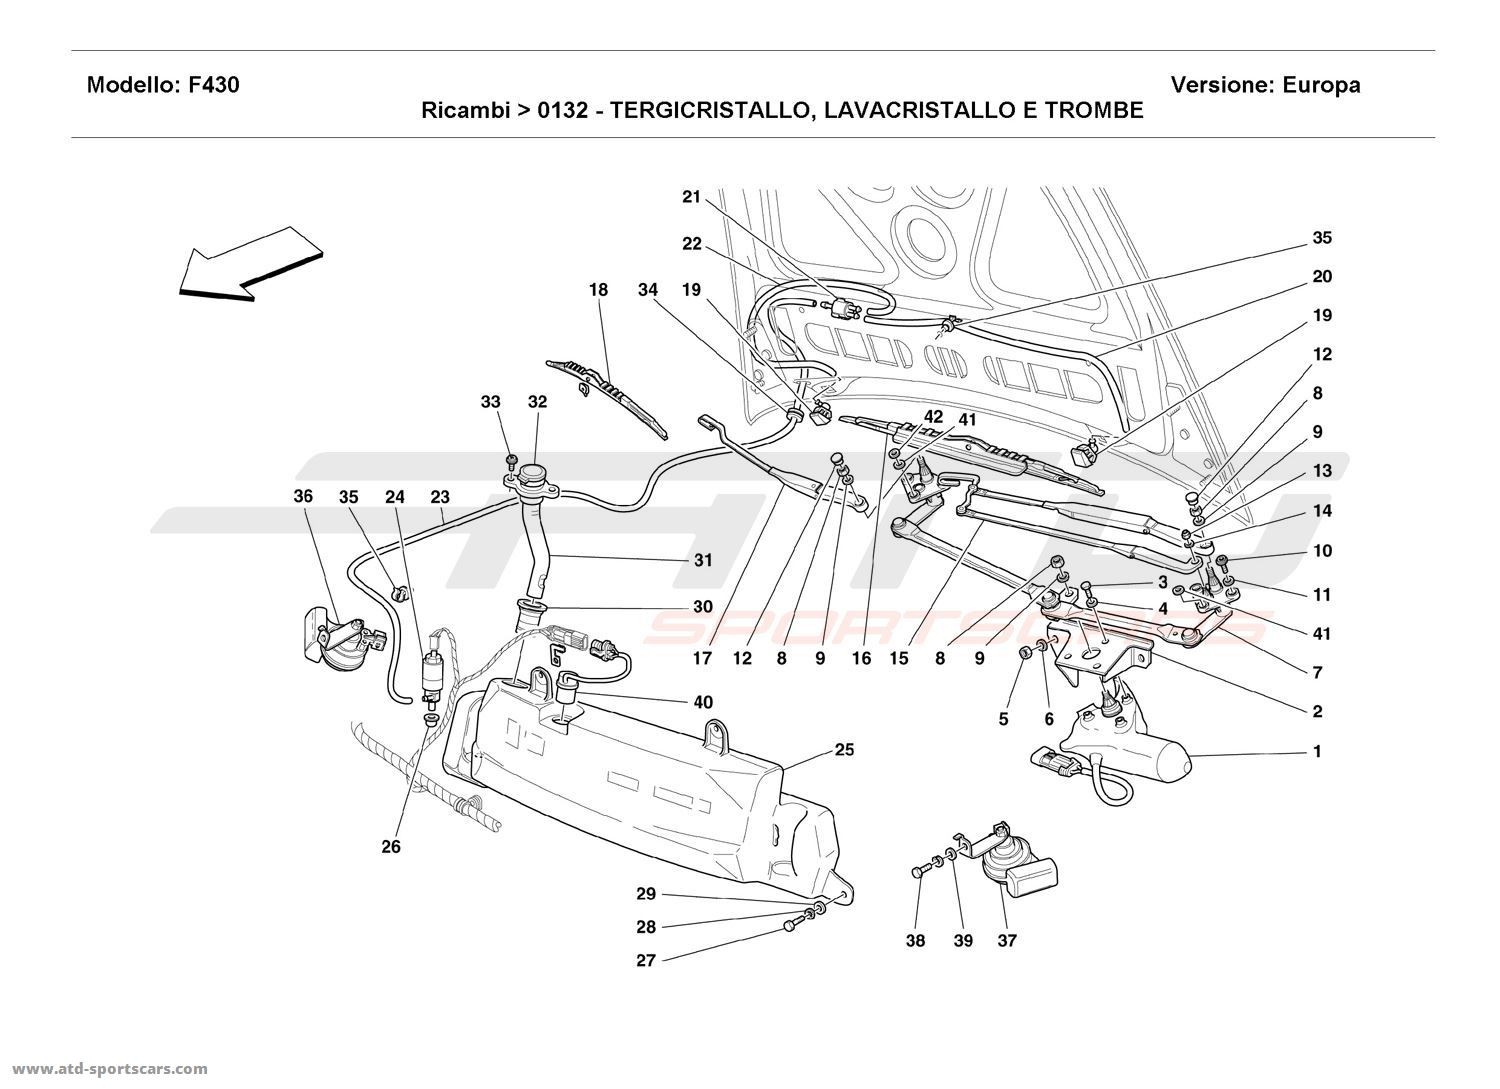 2002 Oldsmobile Silhouette Diagram Showing Brake Line also Army Technical Bulletin Tb 43 0116 likewise 1994 Chrysler New Yorker Evap Canister Solenoid Replacement together with 2006 Ferrari F430 Spider Windshield Washer Replacement besides How To Replace Ac Tube In A 1993 Jeep Cherokee. on blue chrysler new yorker